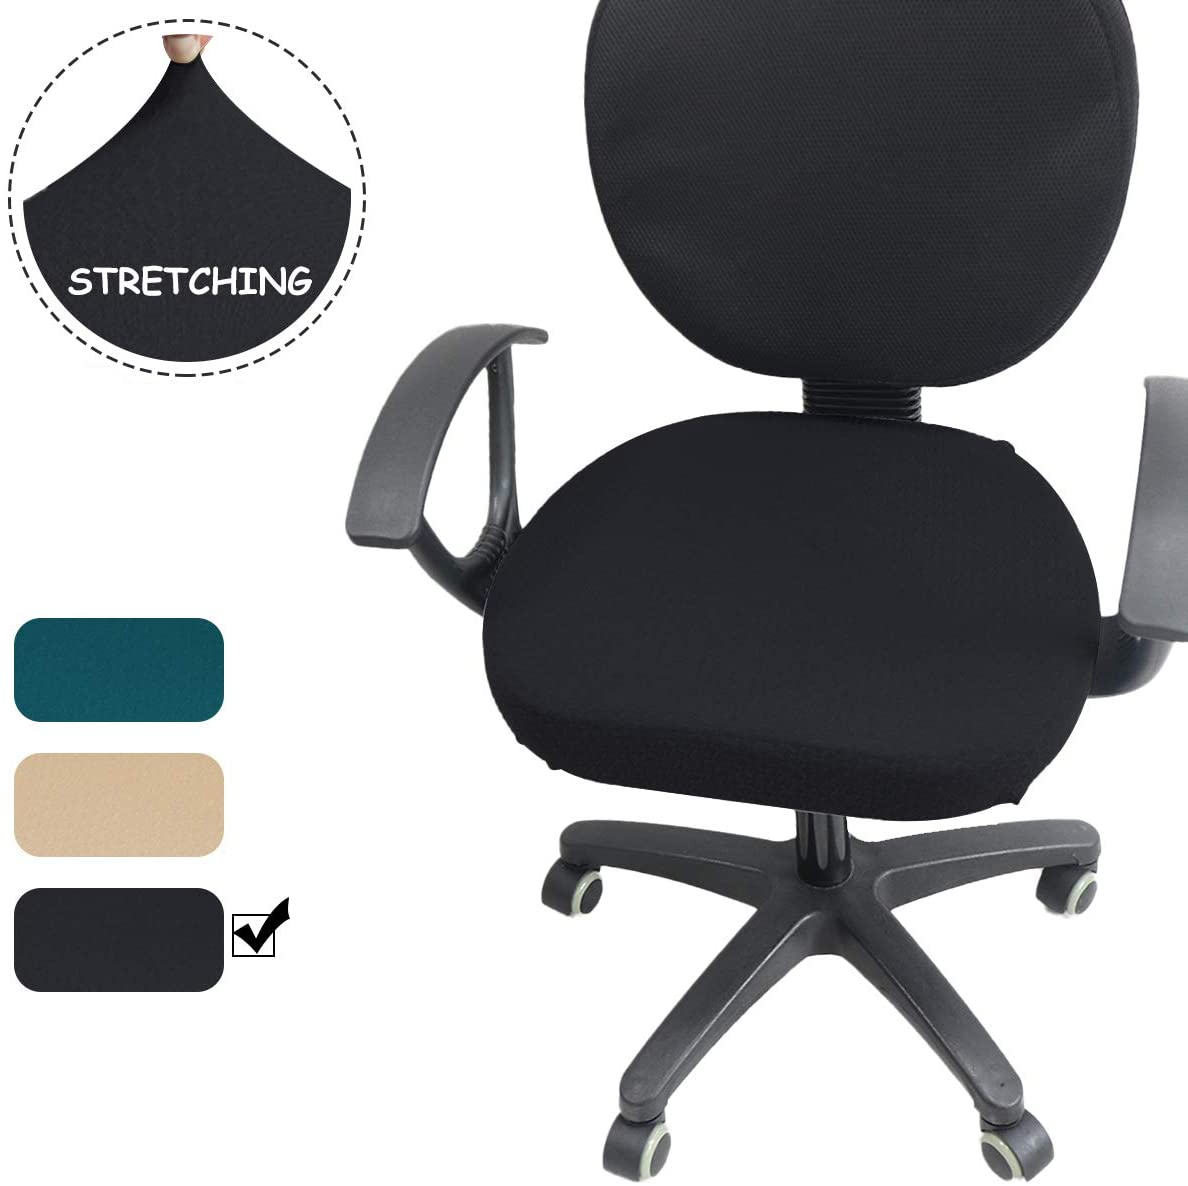 Chair Seat Cover, Small-Square-Grids Jacquard Soft Stretchable Dining Room Office Chair Slipcover Square Round Seat Cushion Cover, Tx-Black